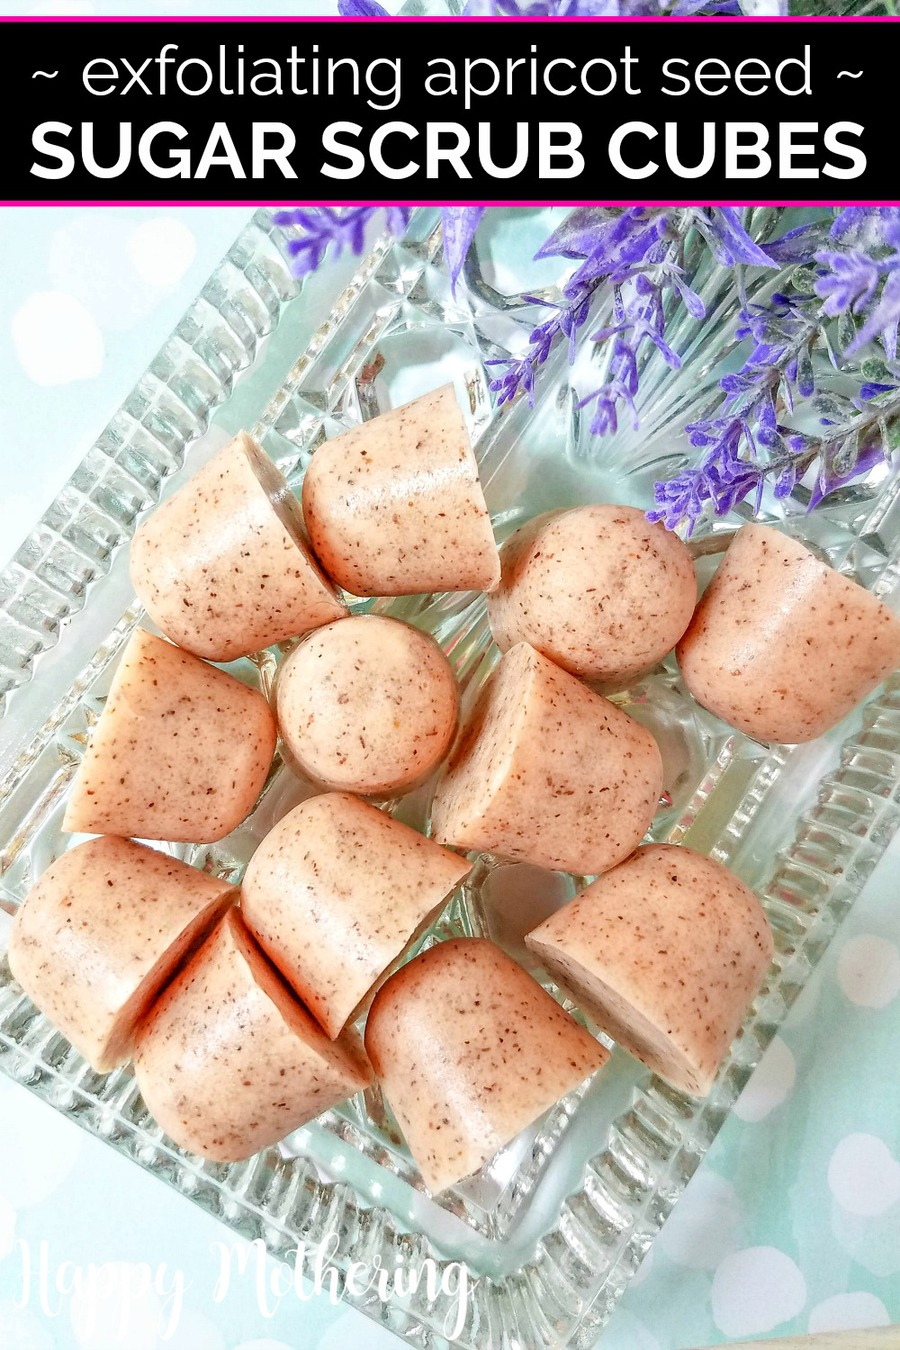 I love making homemade natural beauty products. If you're looking for new skincare recipes to try for your next spa day, these DIY Exfoliating Apricot Seed Sugar Scrub Cubes are easy to make and they do wonders for rough, dry skin.